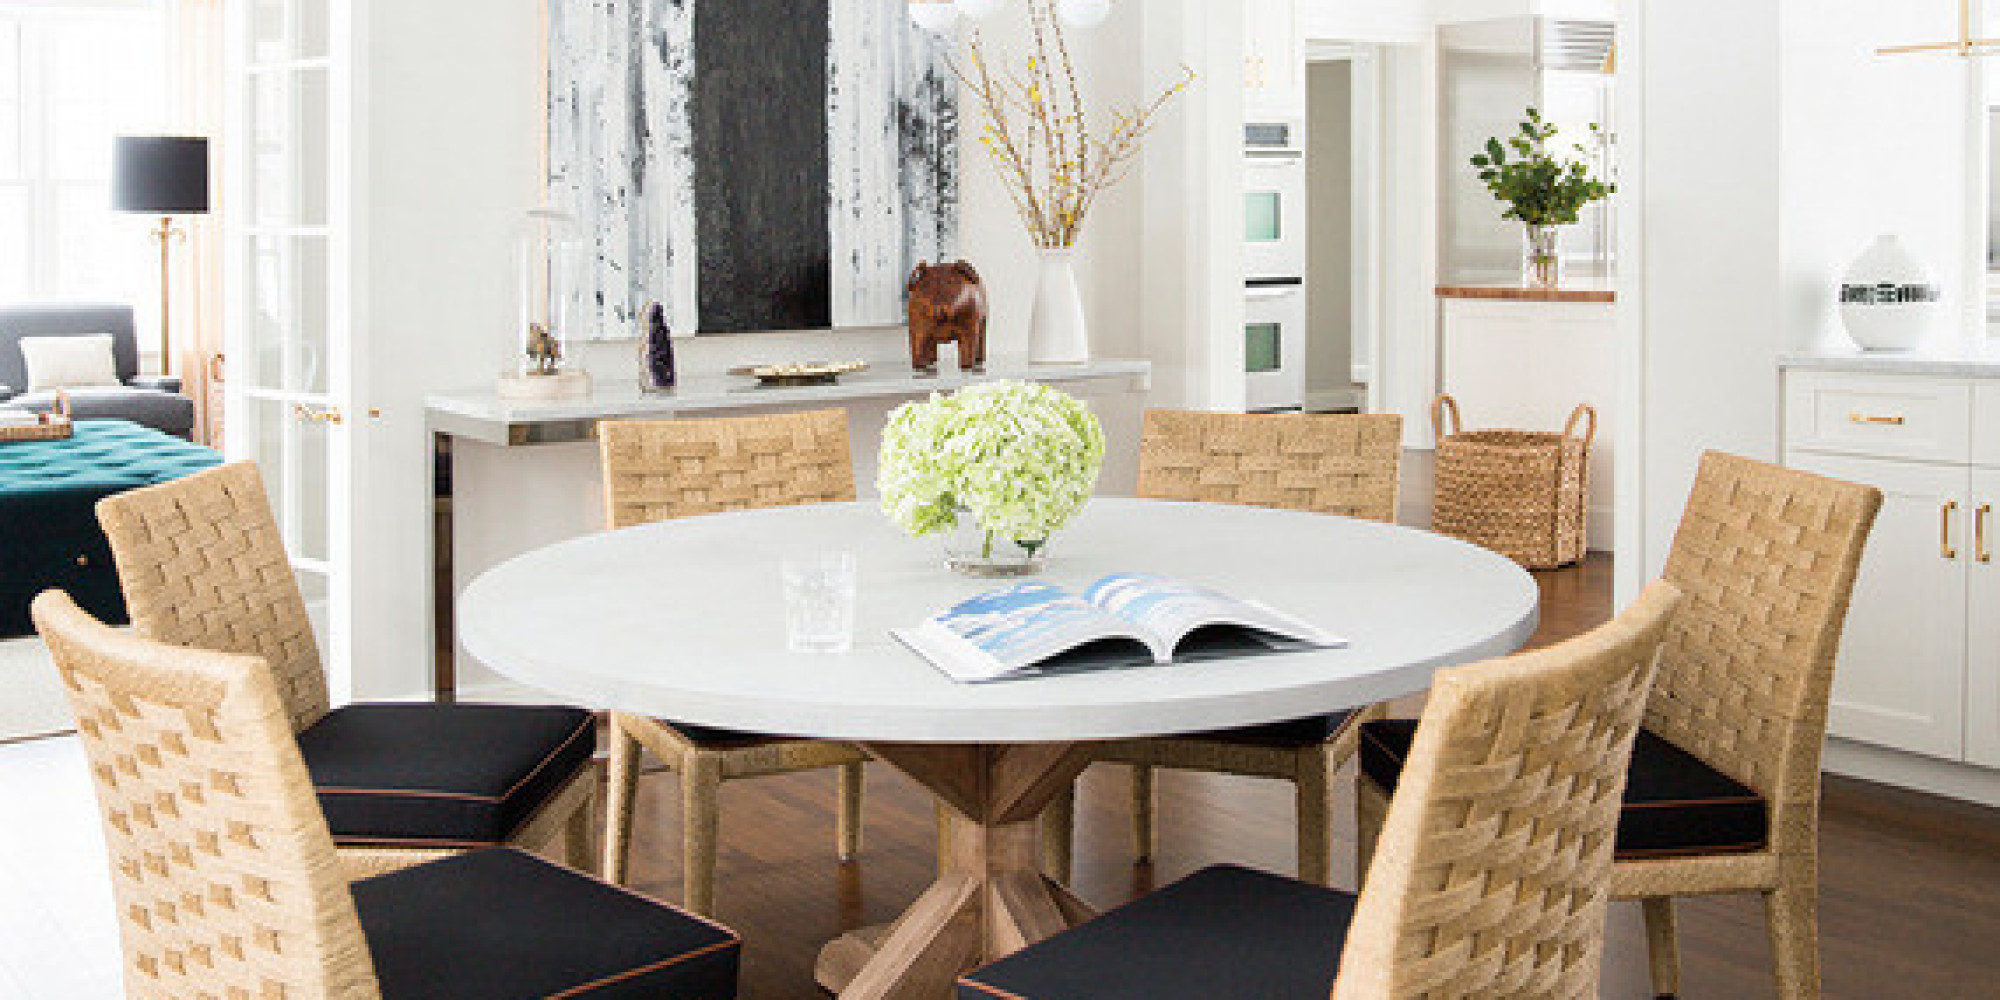 Get Inside these Outstanding Dining Rooms by Nate Berkus Dining Rooms by Nate Berkus Get Inside these Outstanding Dining Rooms by Nate Berkus Get Inside these Outstanding Dining Rooms by Nate Berkus7